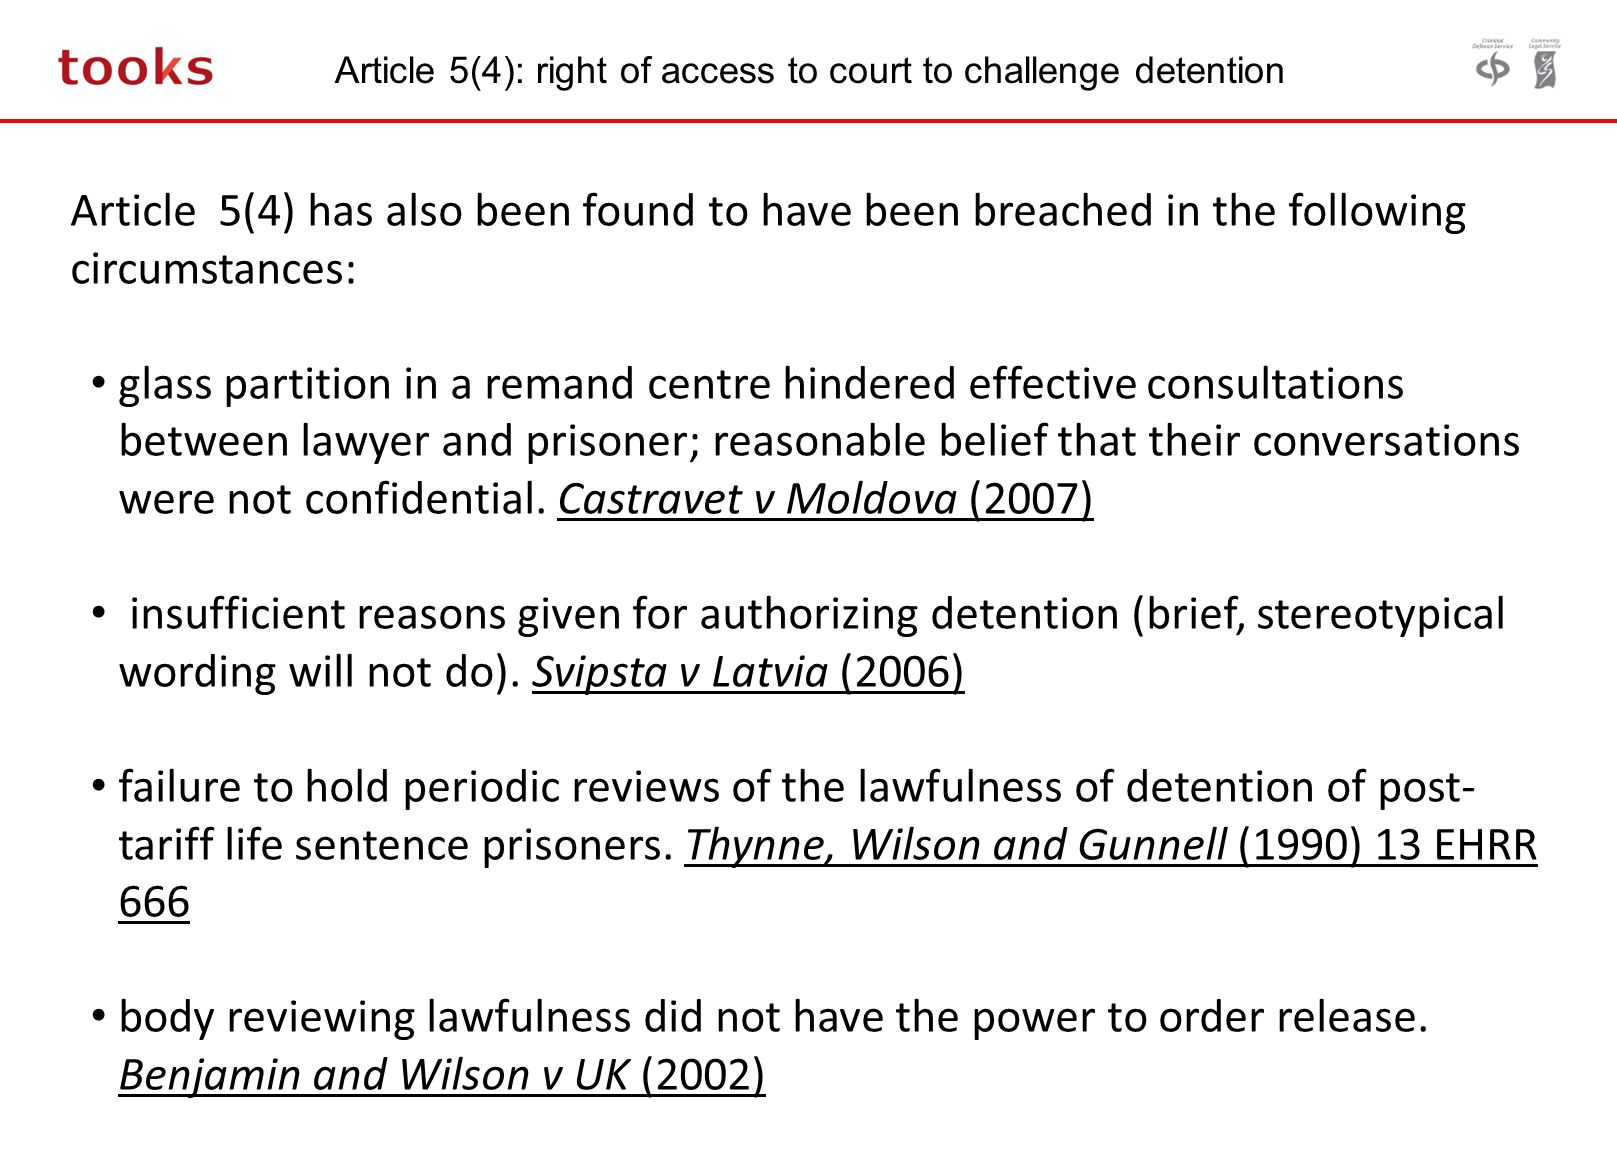 Article 5(4): right of access to court to challenge detention Article 5(4) has also been found to have been breached in the following circumstances: glass partition in a remand centre hindered effective consultations between lawyer and prisoner; reasonable belief that their conversations were not confidential.